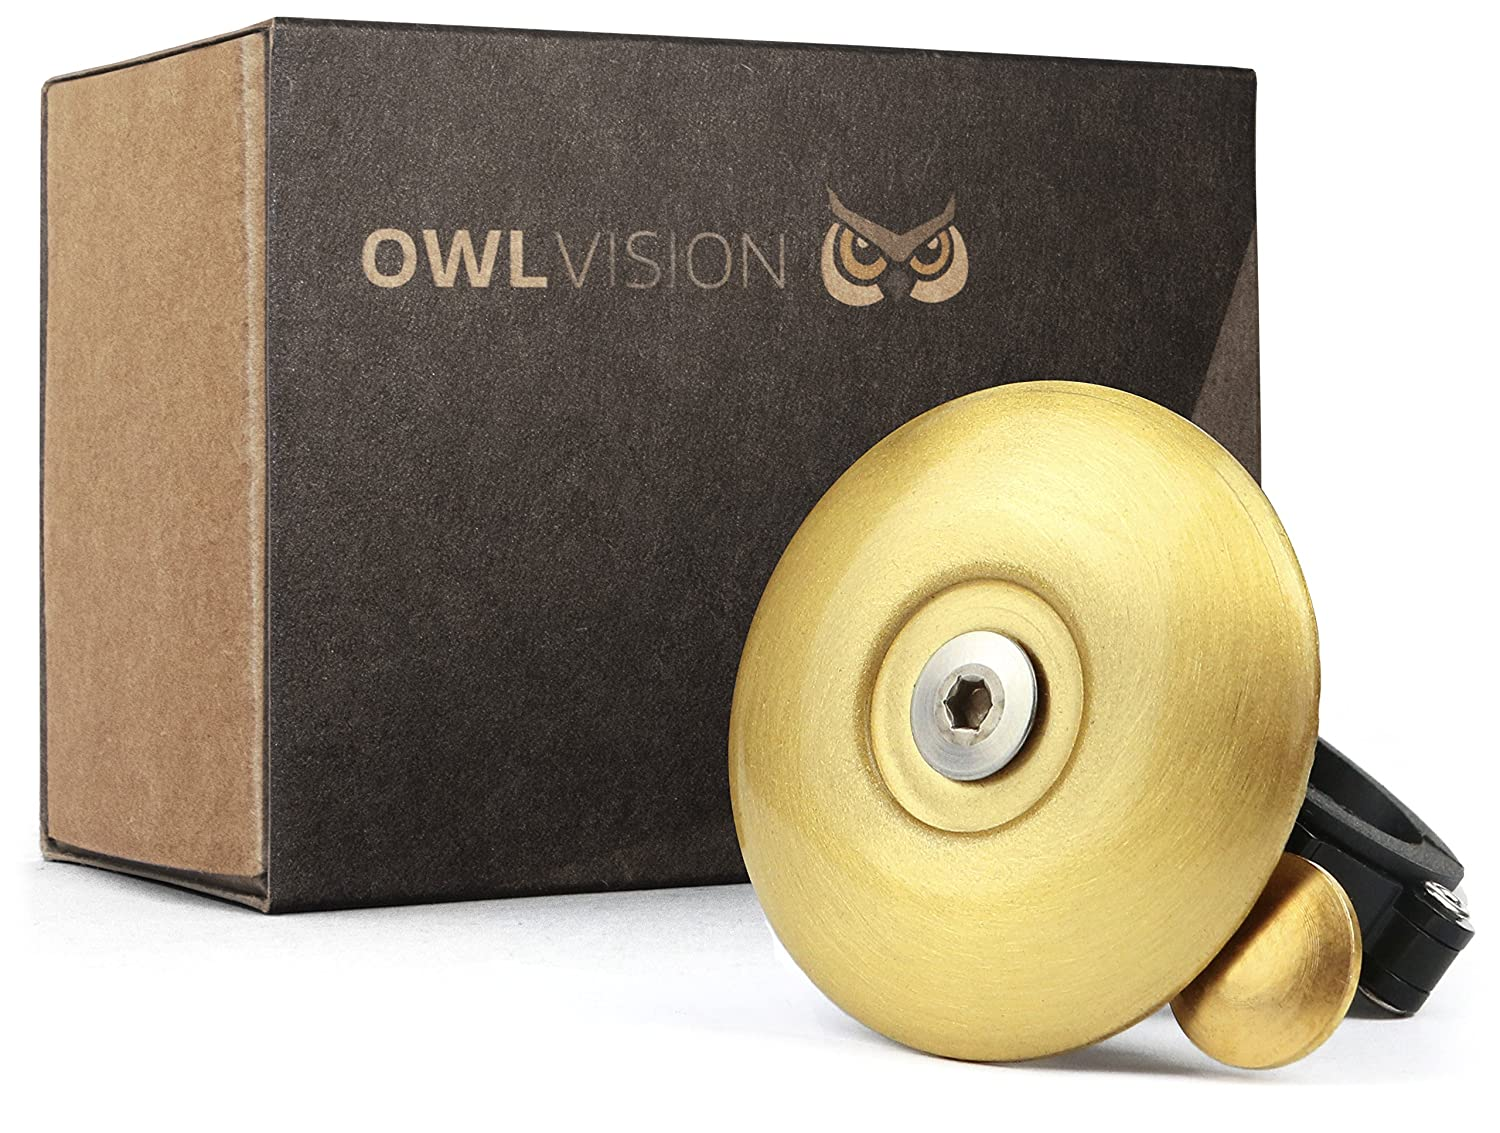 OWL VISION Cycling Bell Hoot - Cymbal